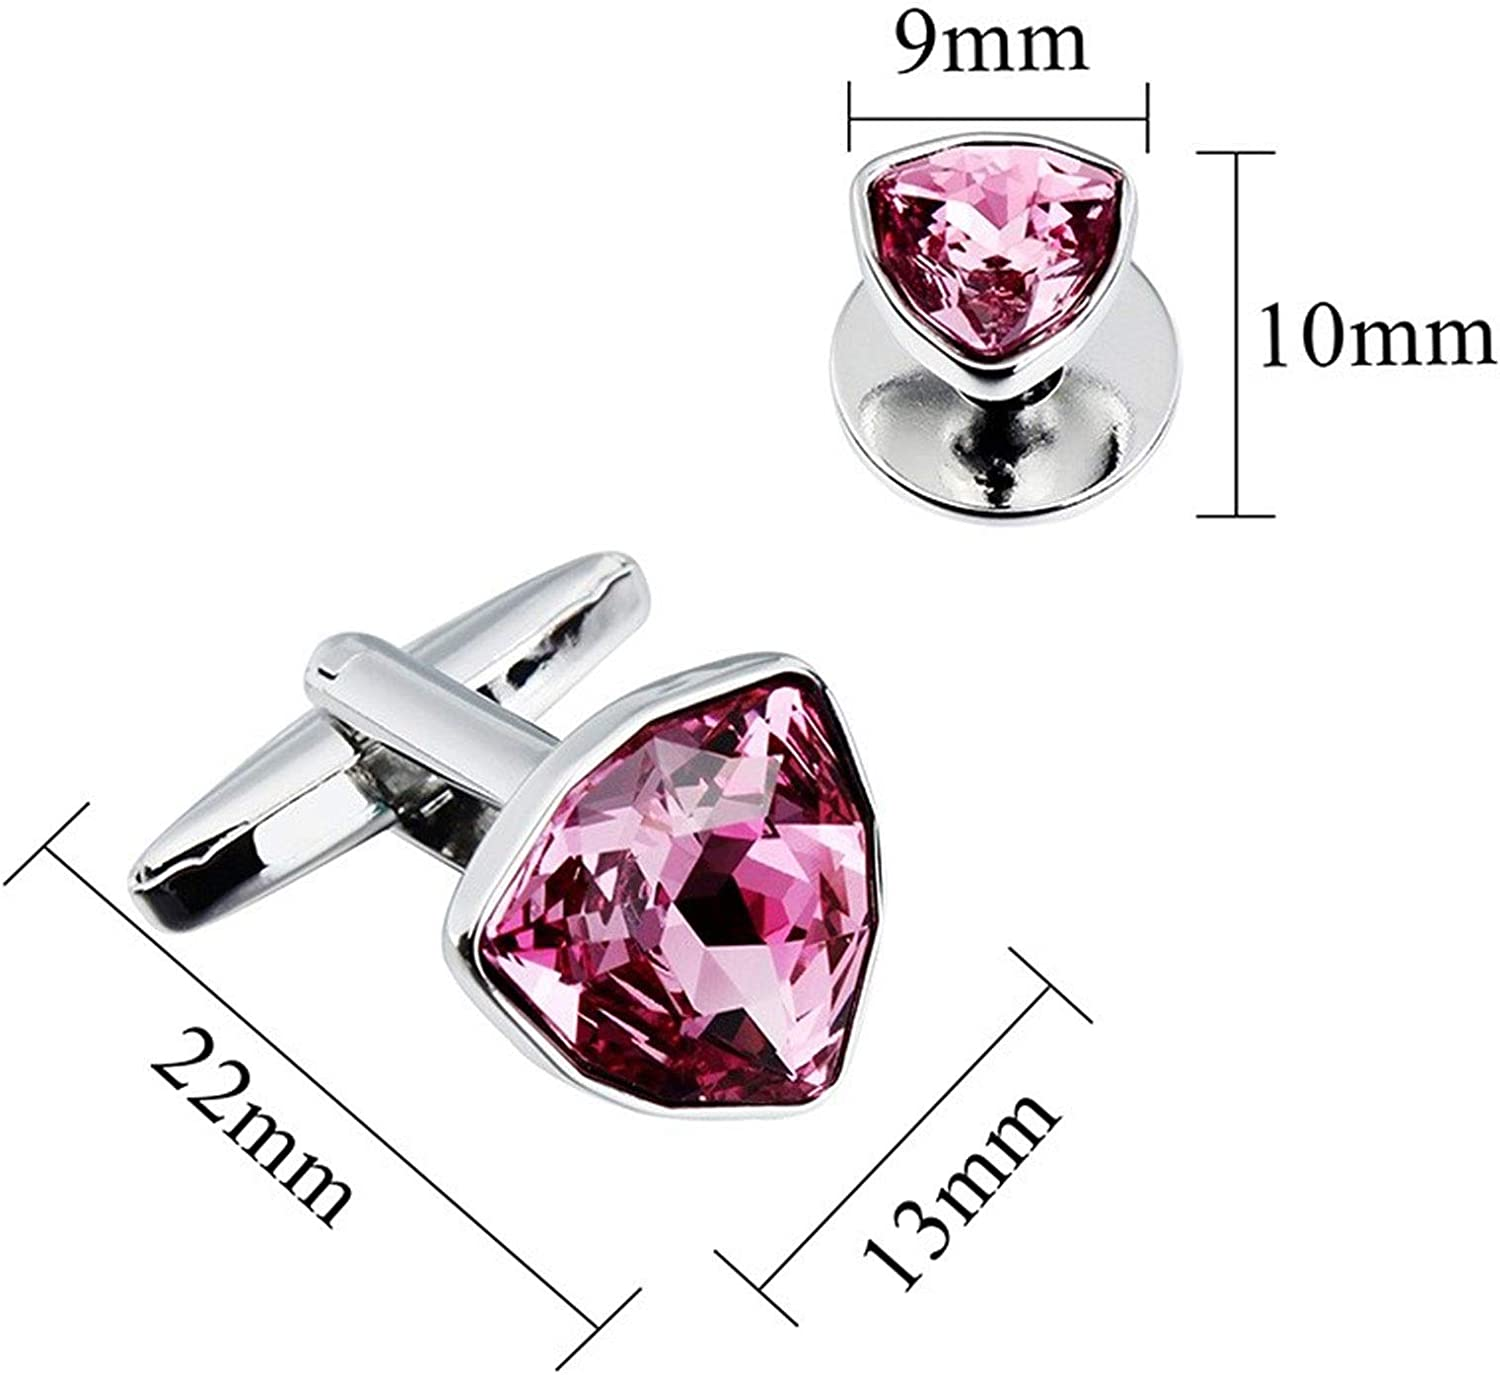 Triangle Crystal Cufflinks, Tuxedo Studs Set for Men 2Pcs Cuff Links with 6Pcs Studs Packed in Box Best Gifts (Color : Pink)